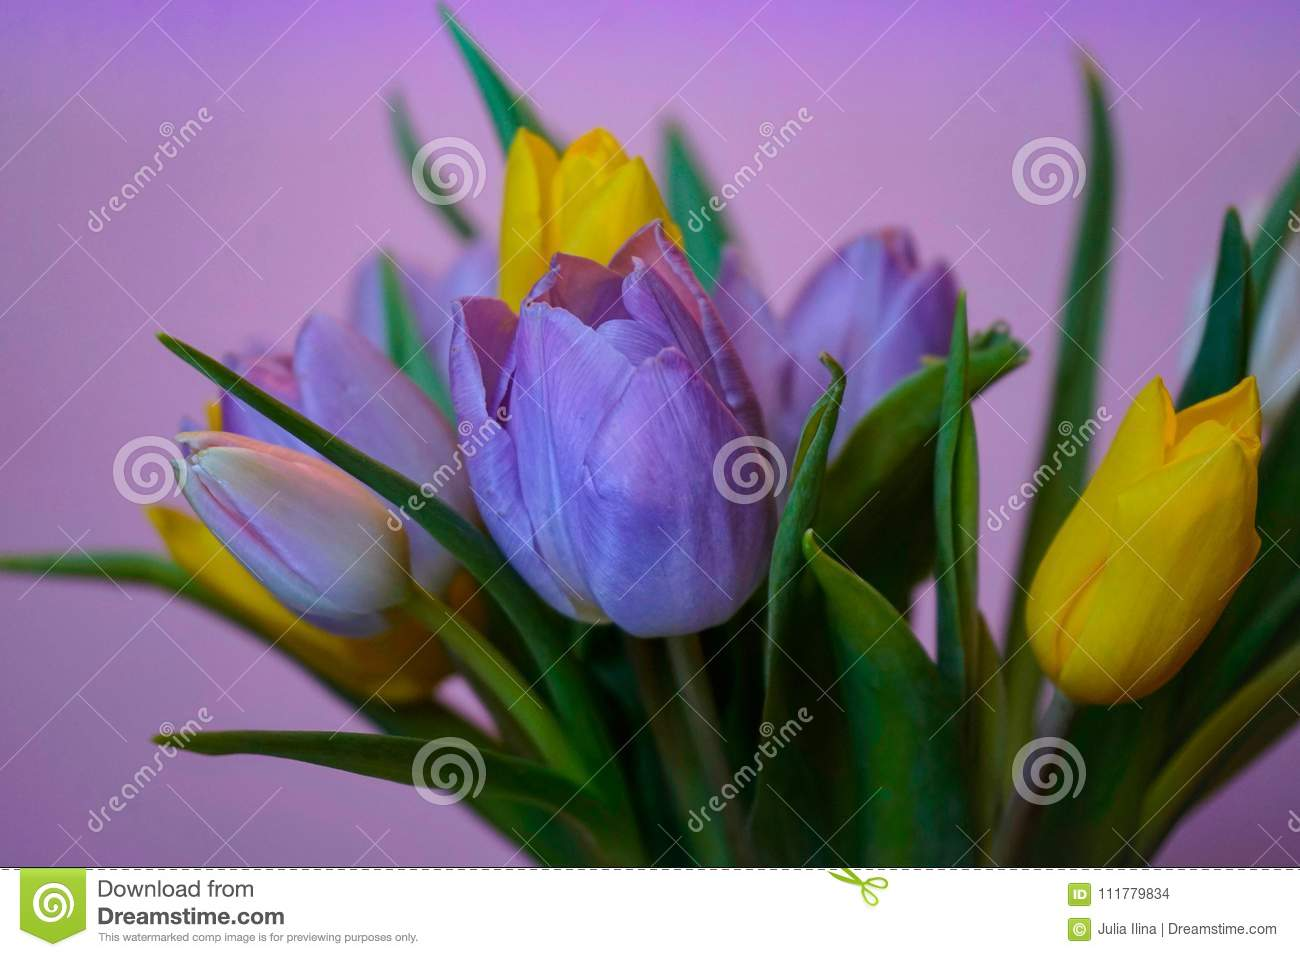 tulips flowers bouquet pink background close-up